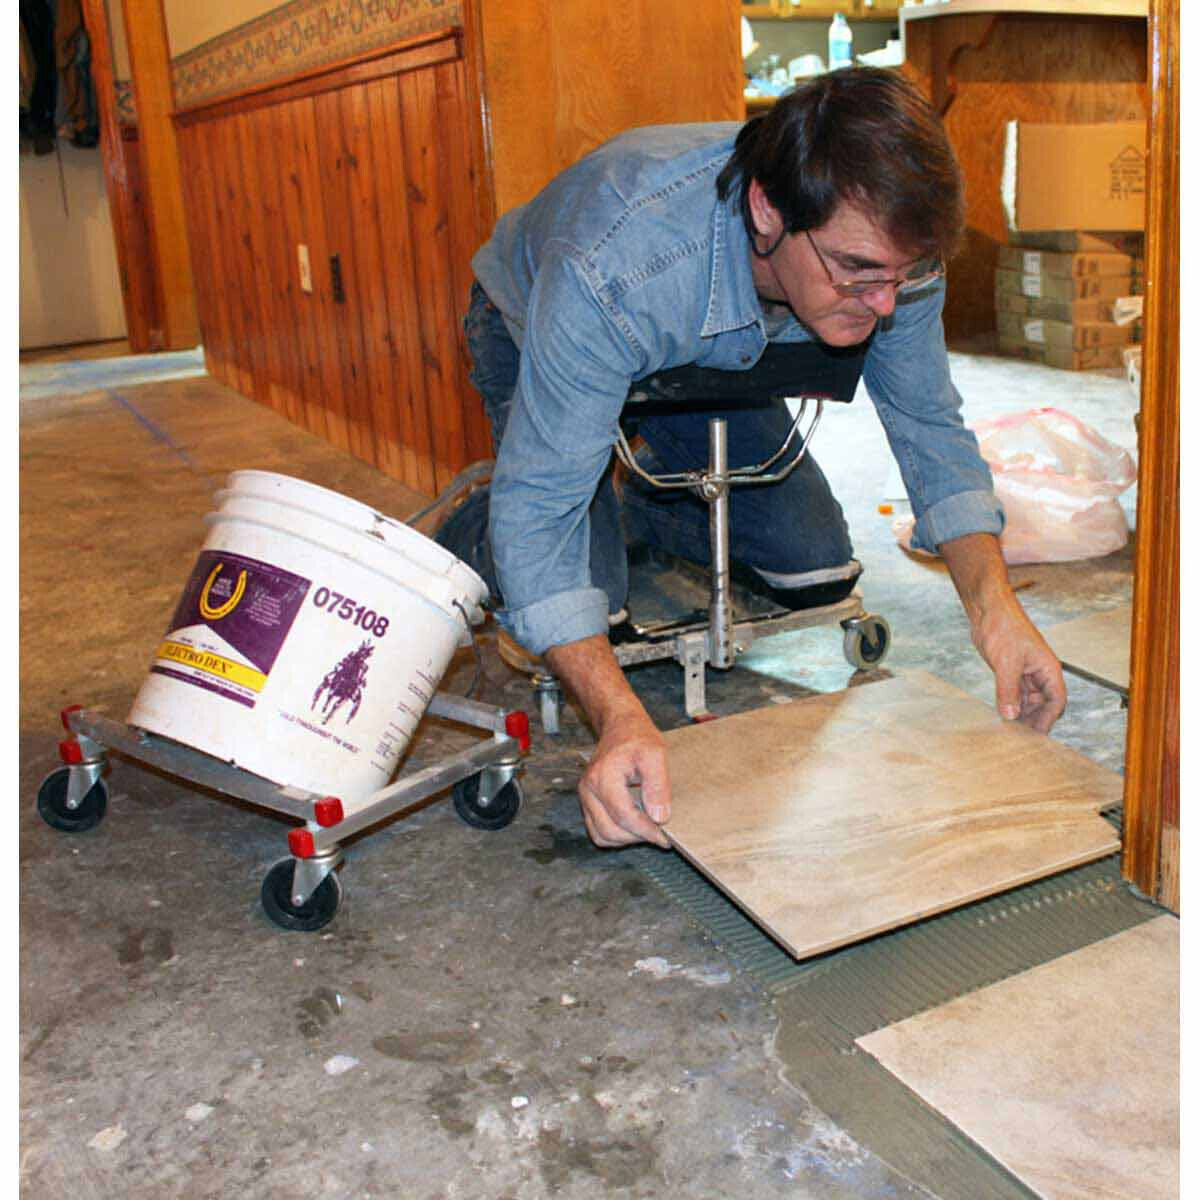 Racatac Rolling Knee Pads Tile Installation